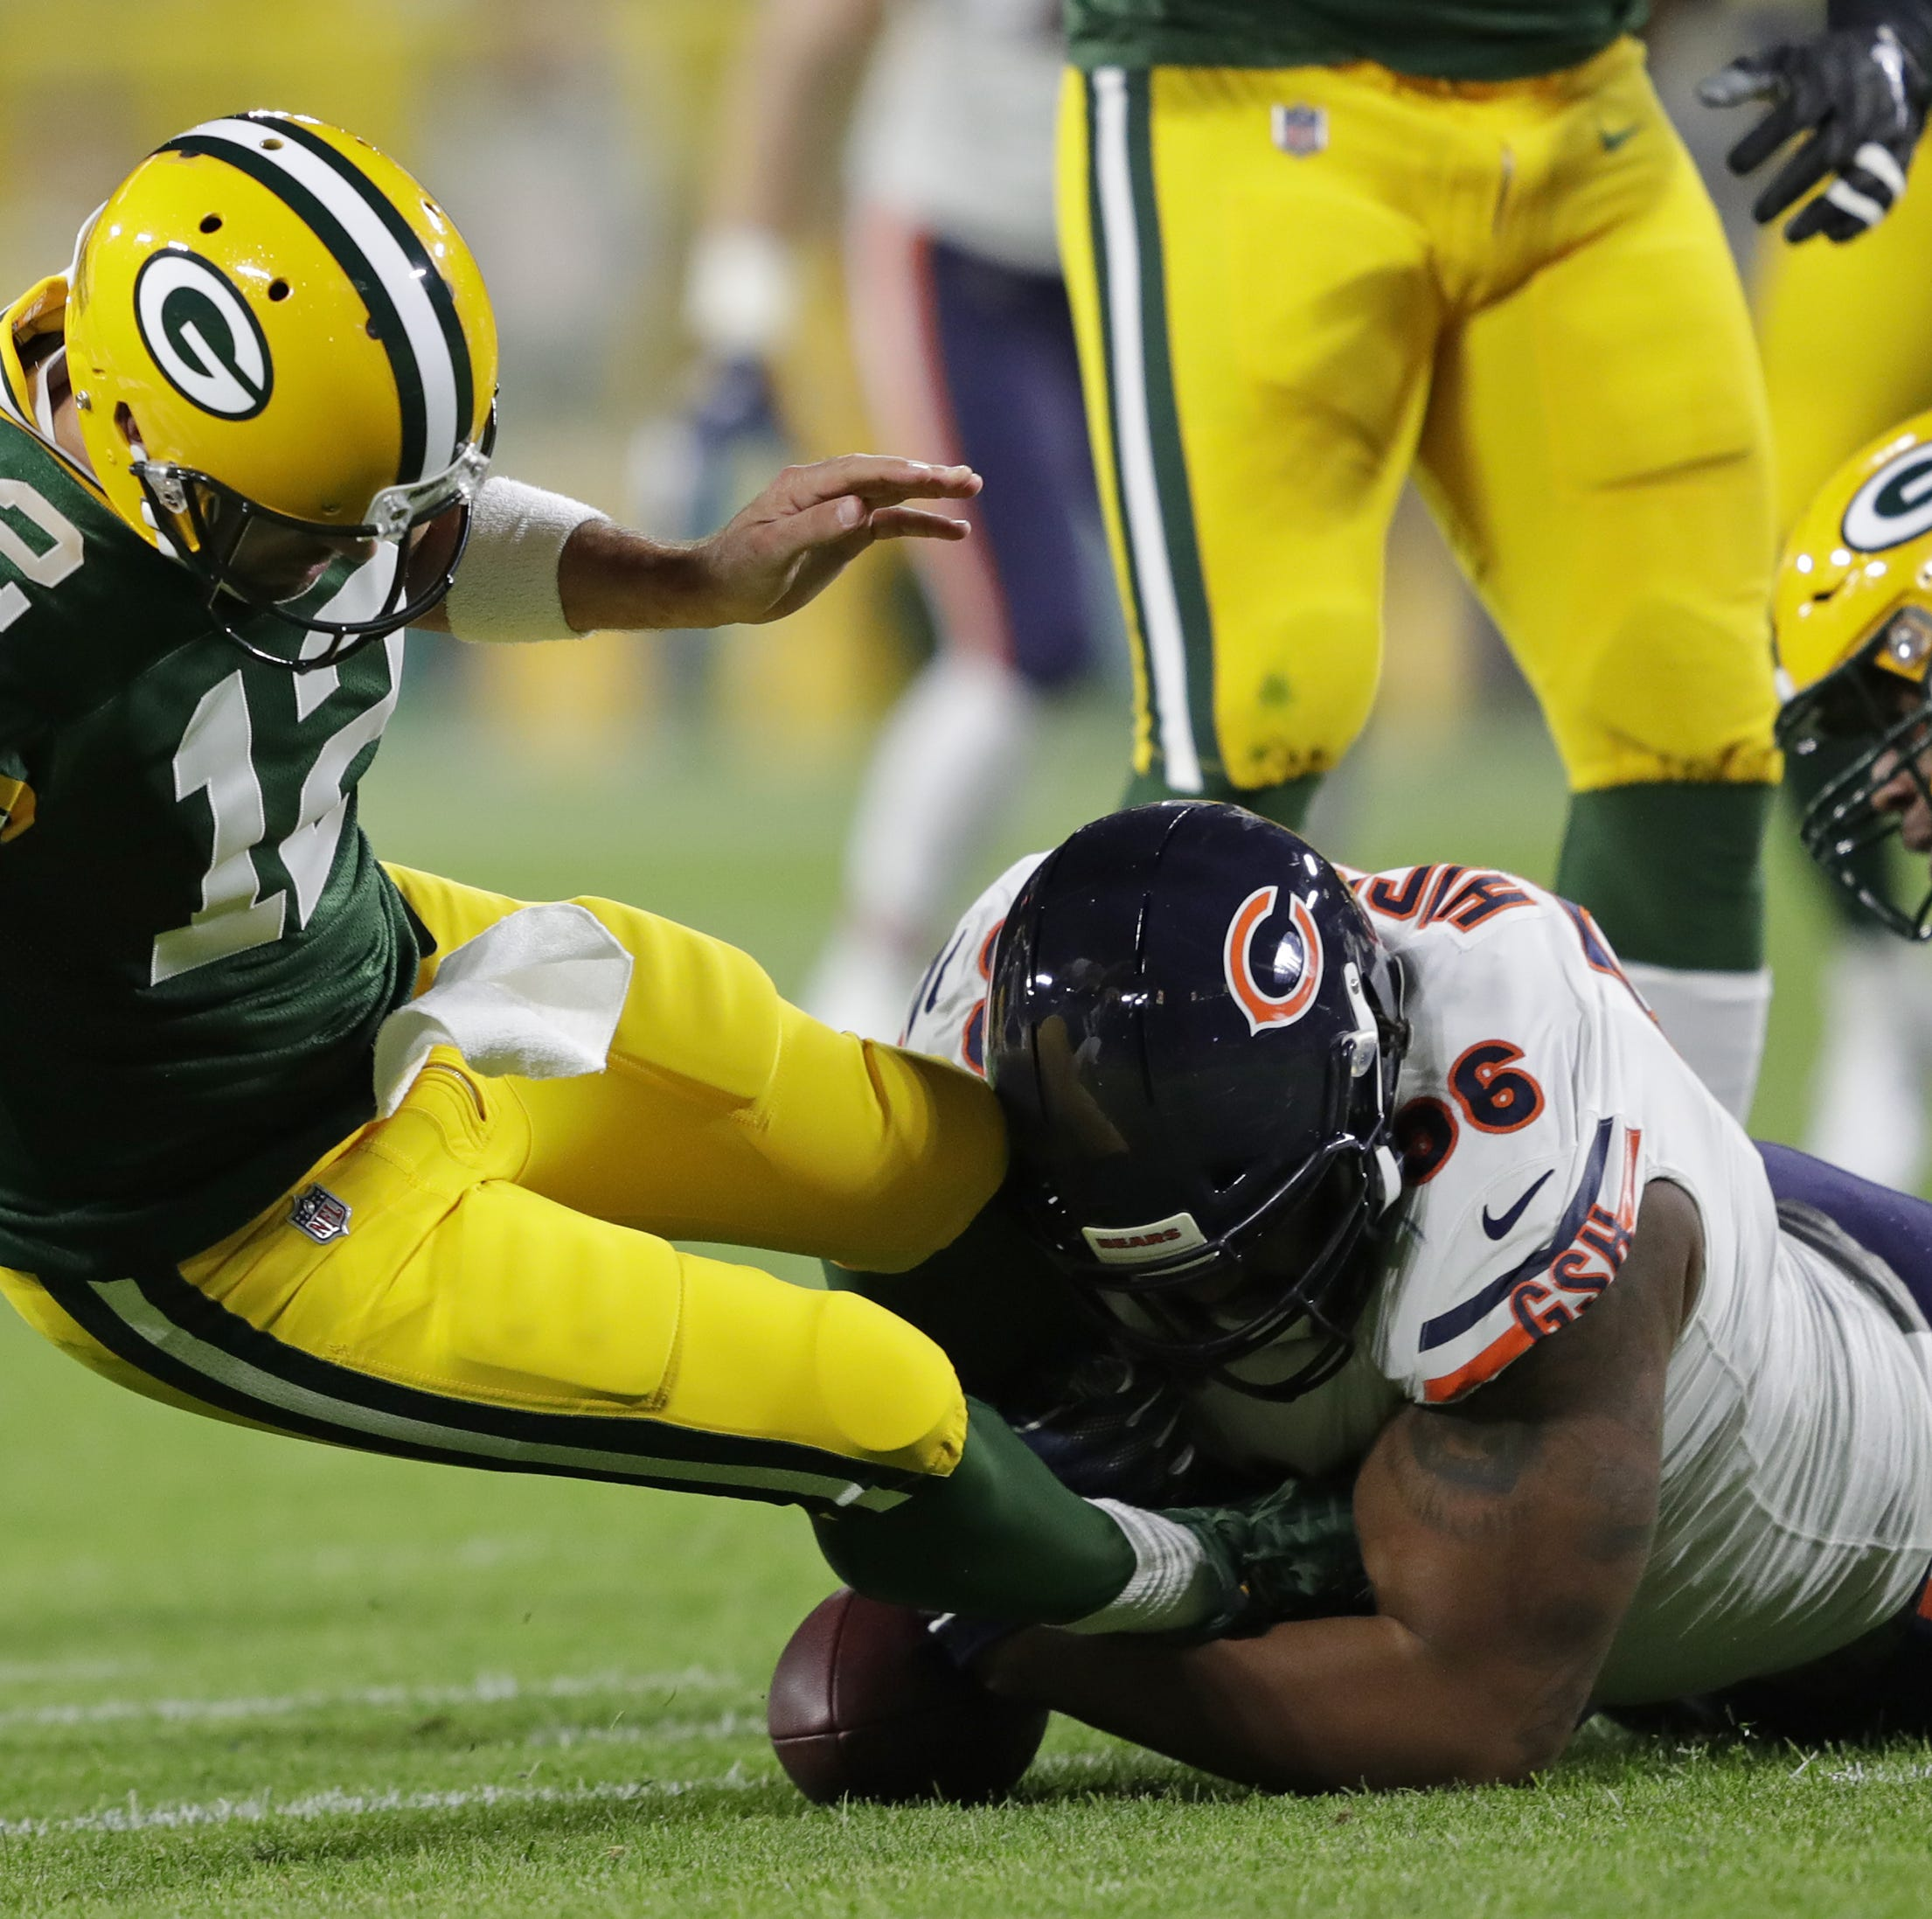 Green Bay Packers' next opponent: Chicago Bears' defense dominant